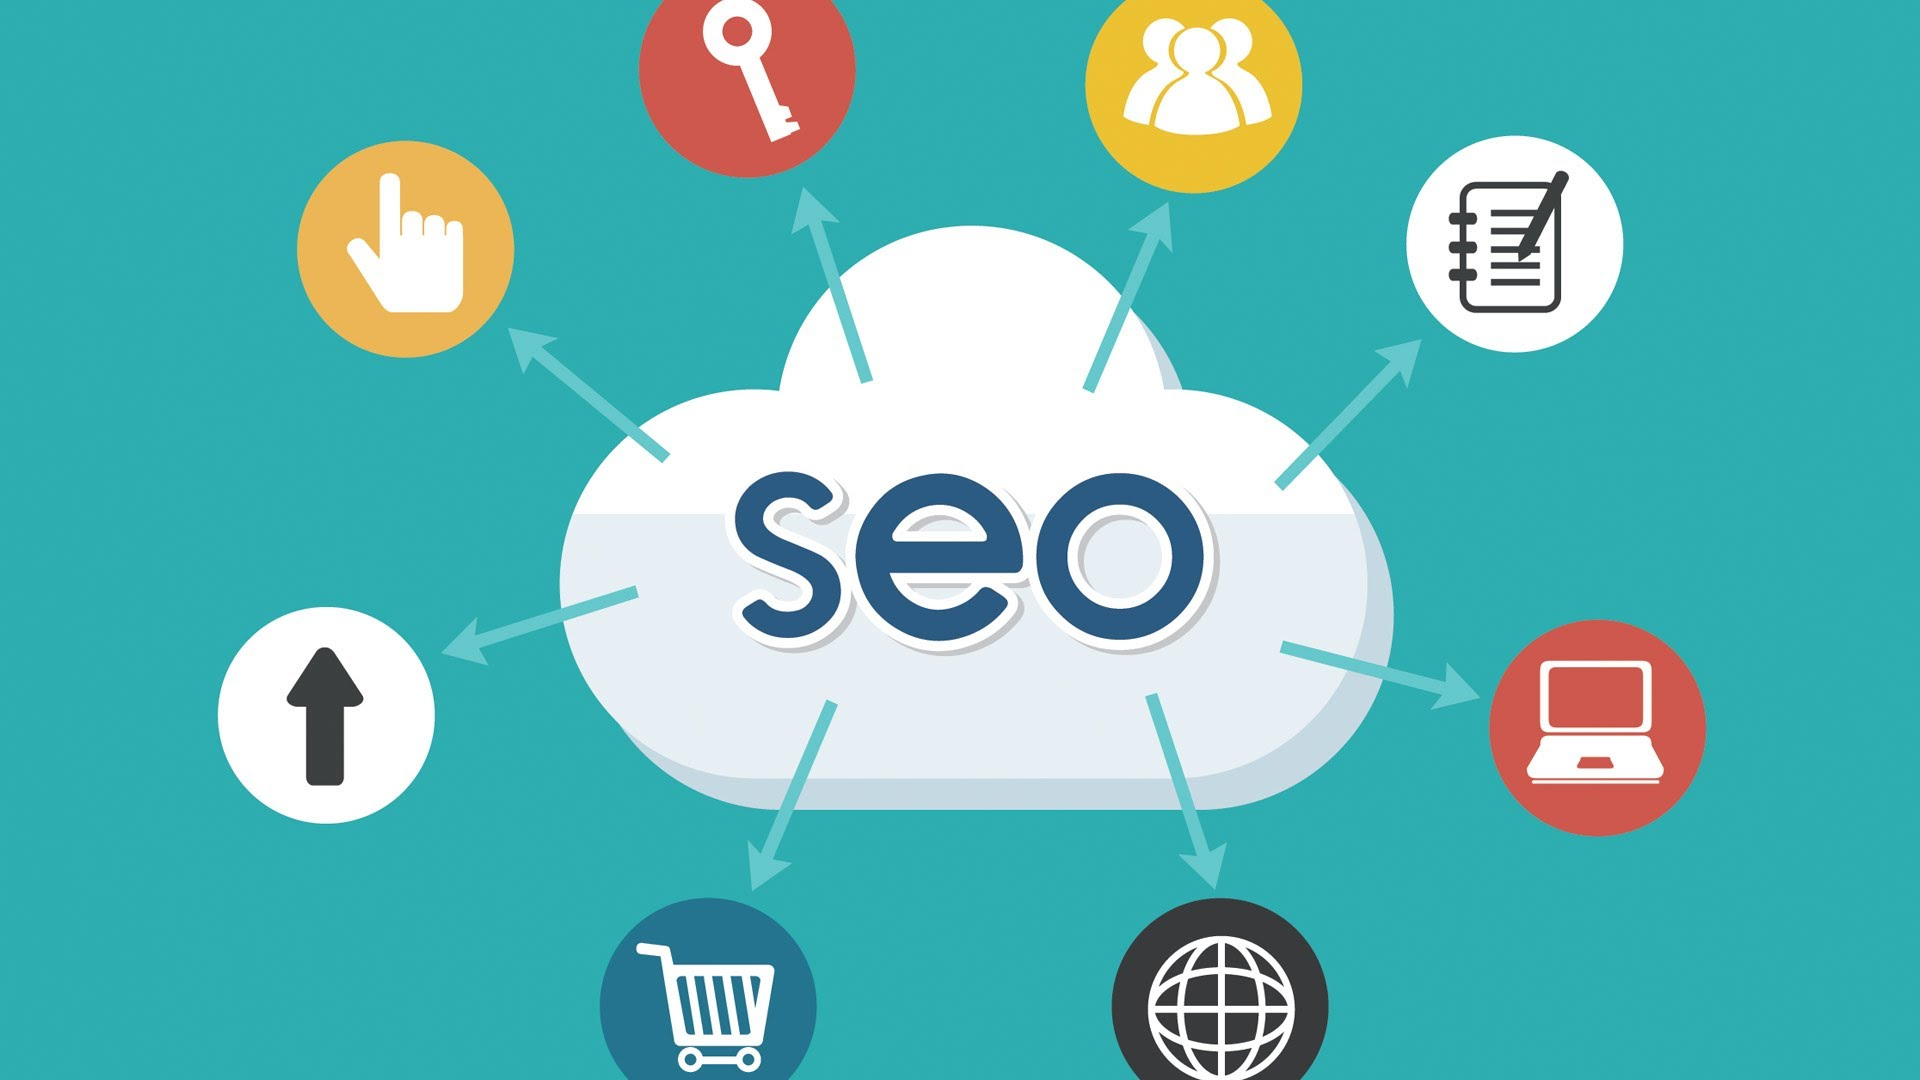 SEO münchen is one of the most professional marketing companies of Germany